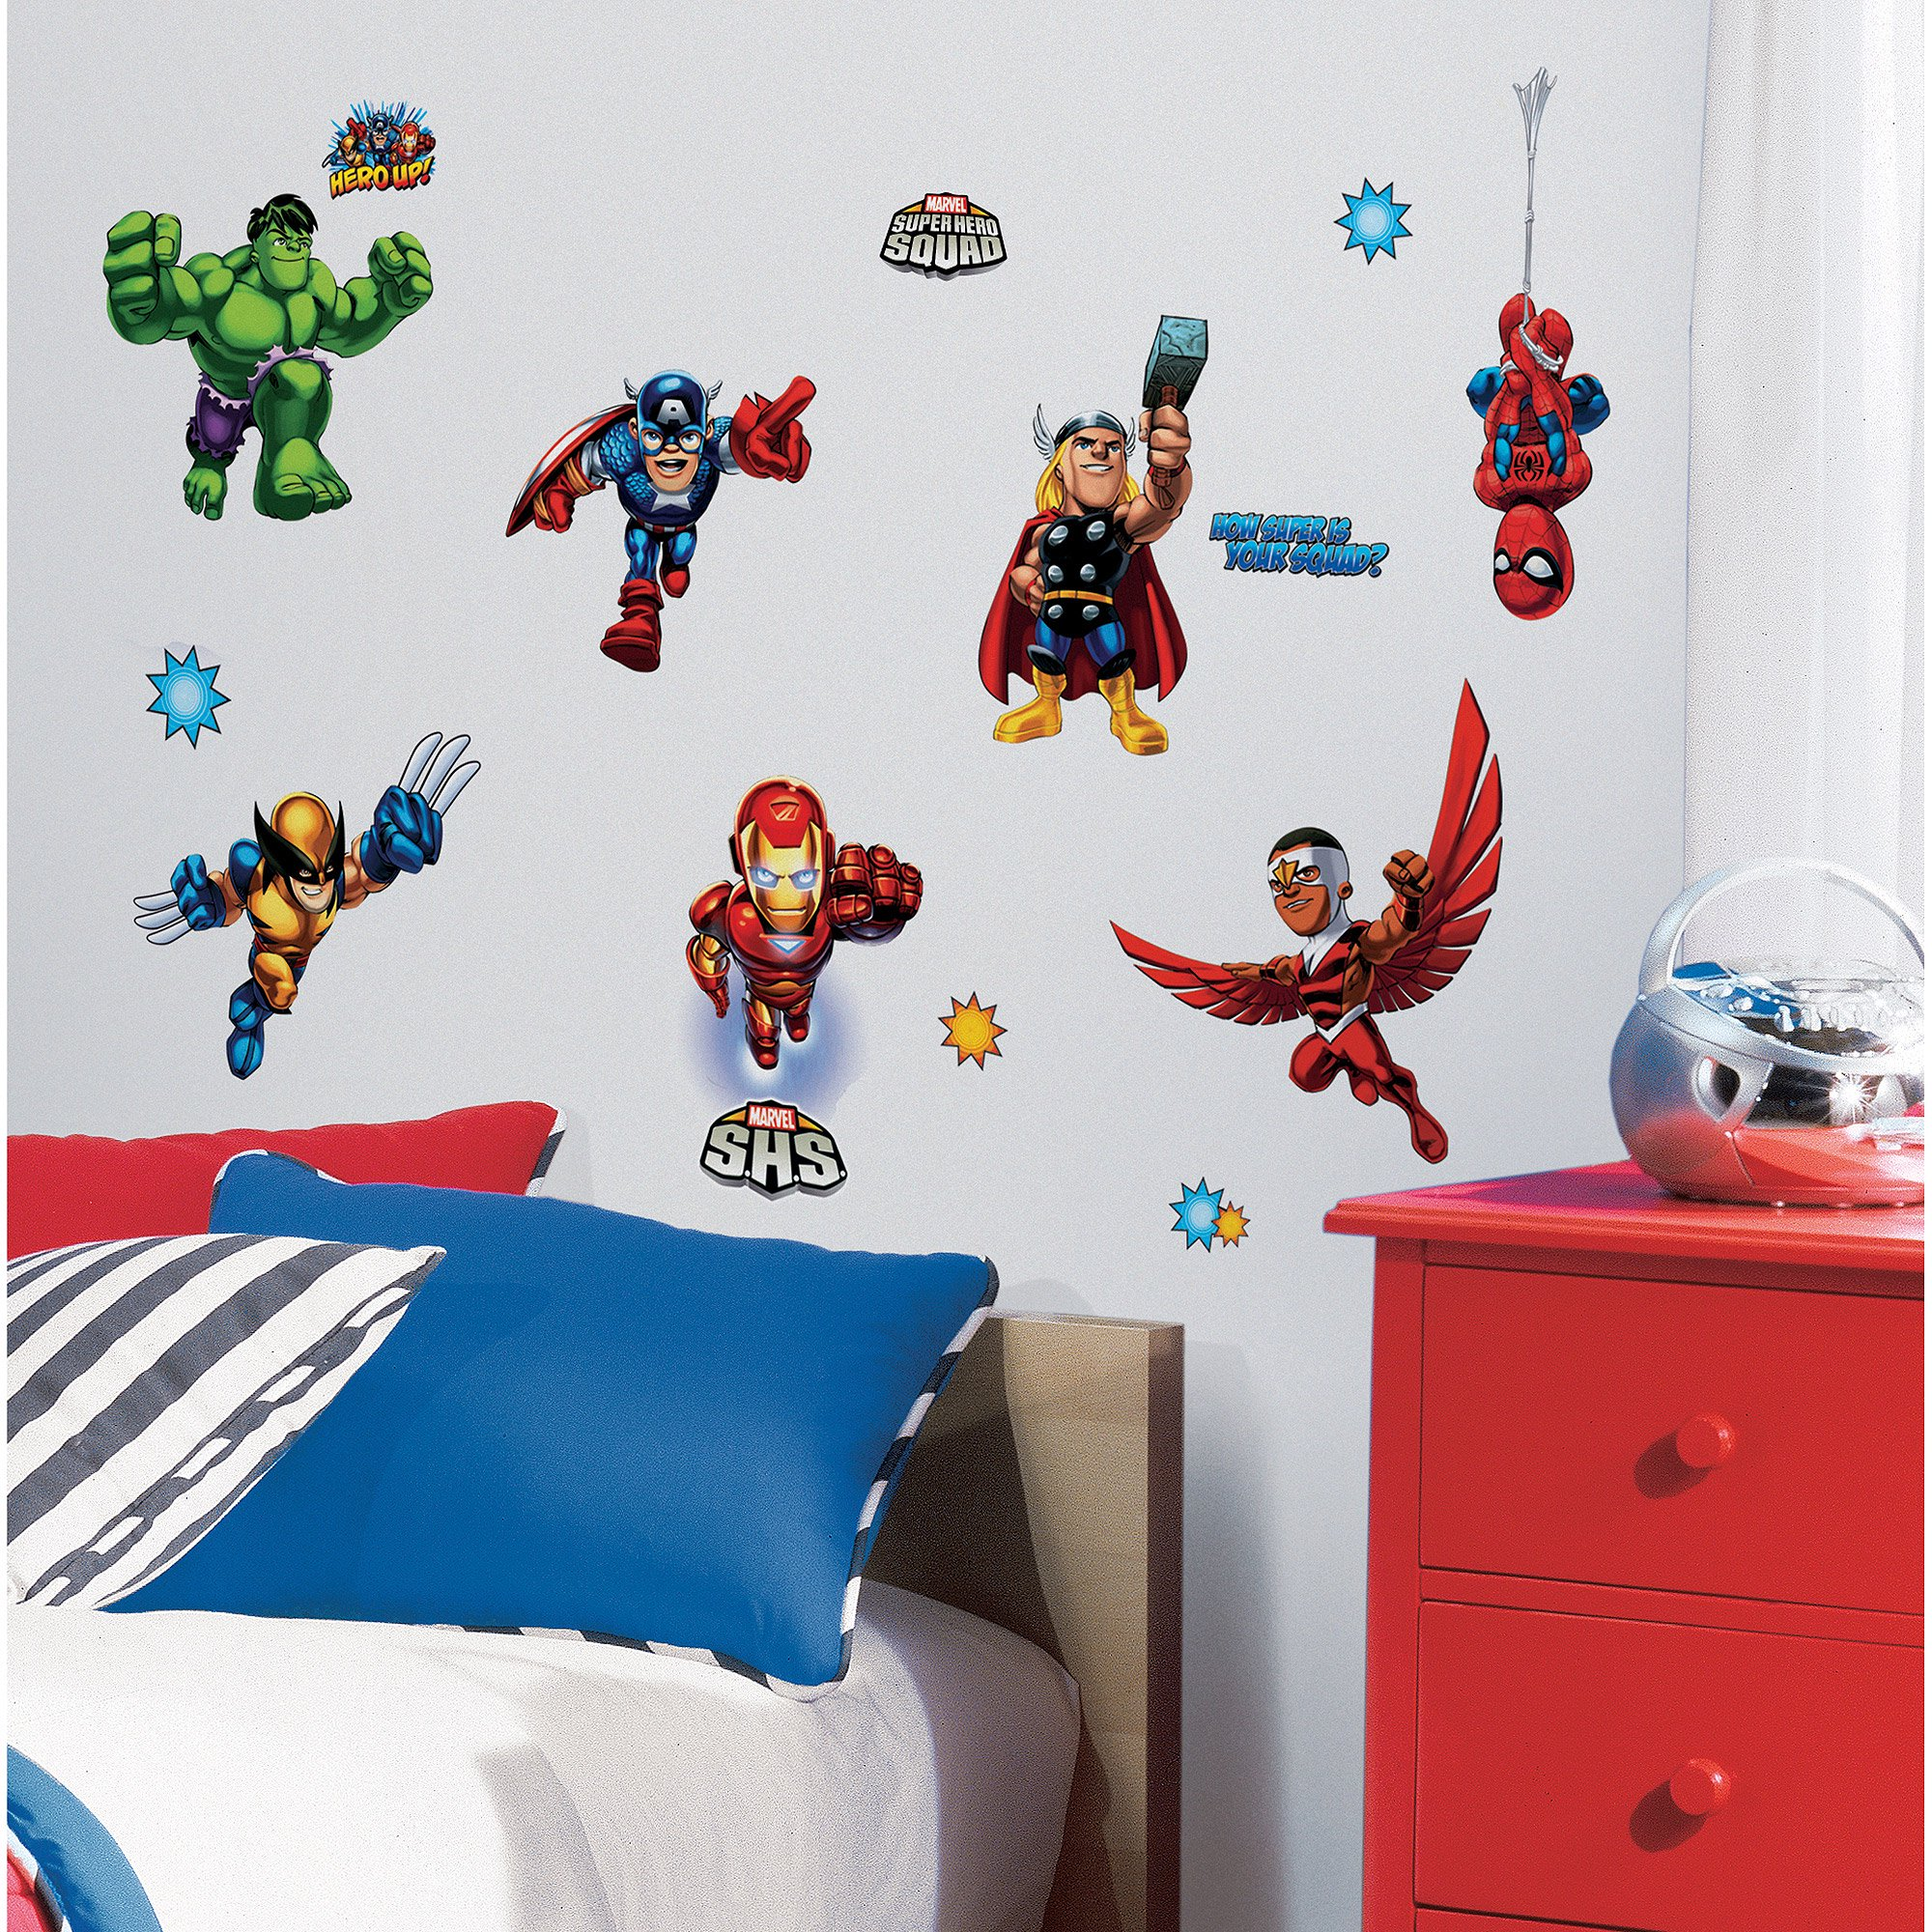 RoomMates Marvel Super Hero Squad Peel u0026 Stick Wall Decals  sc 1 st  Walmart & RoomMates Marvel Super Hero Squad Peel u0026 Stick Wall Decals - Walmart.com